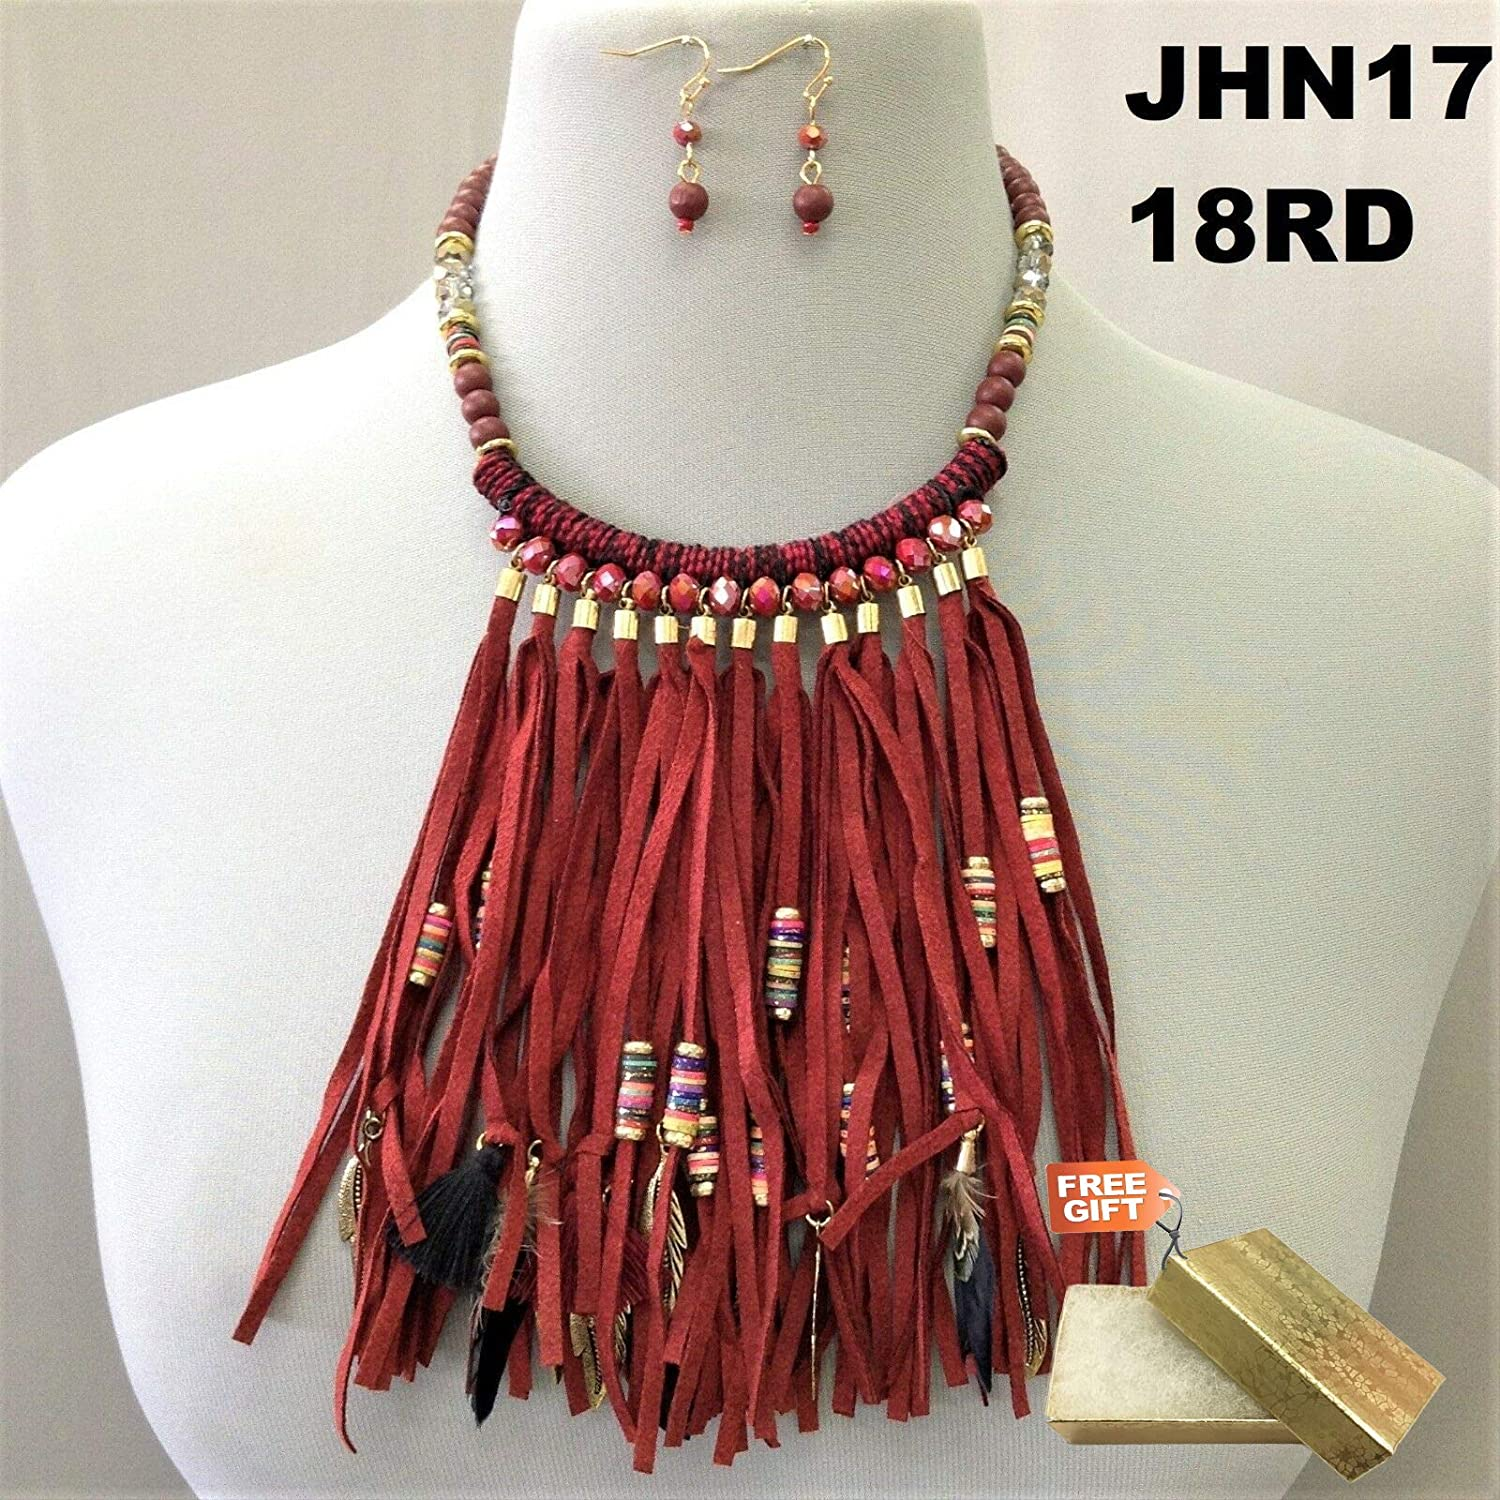 Gold Cotton Filled Gift Box for Free Bohemian Style Burgundy Faux Leather Tassel Feather Beads Necklace /& Earrings Set For Women